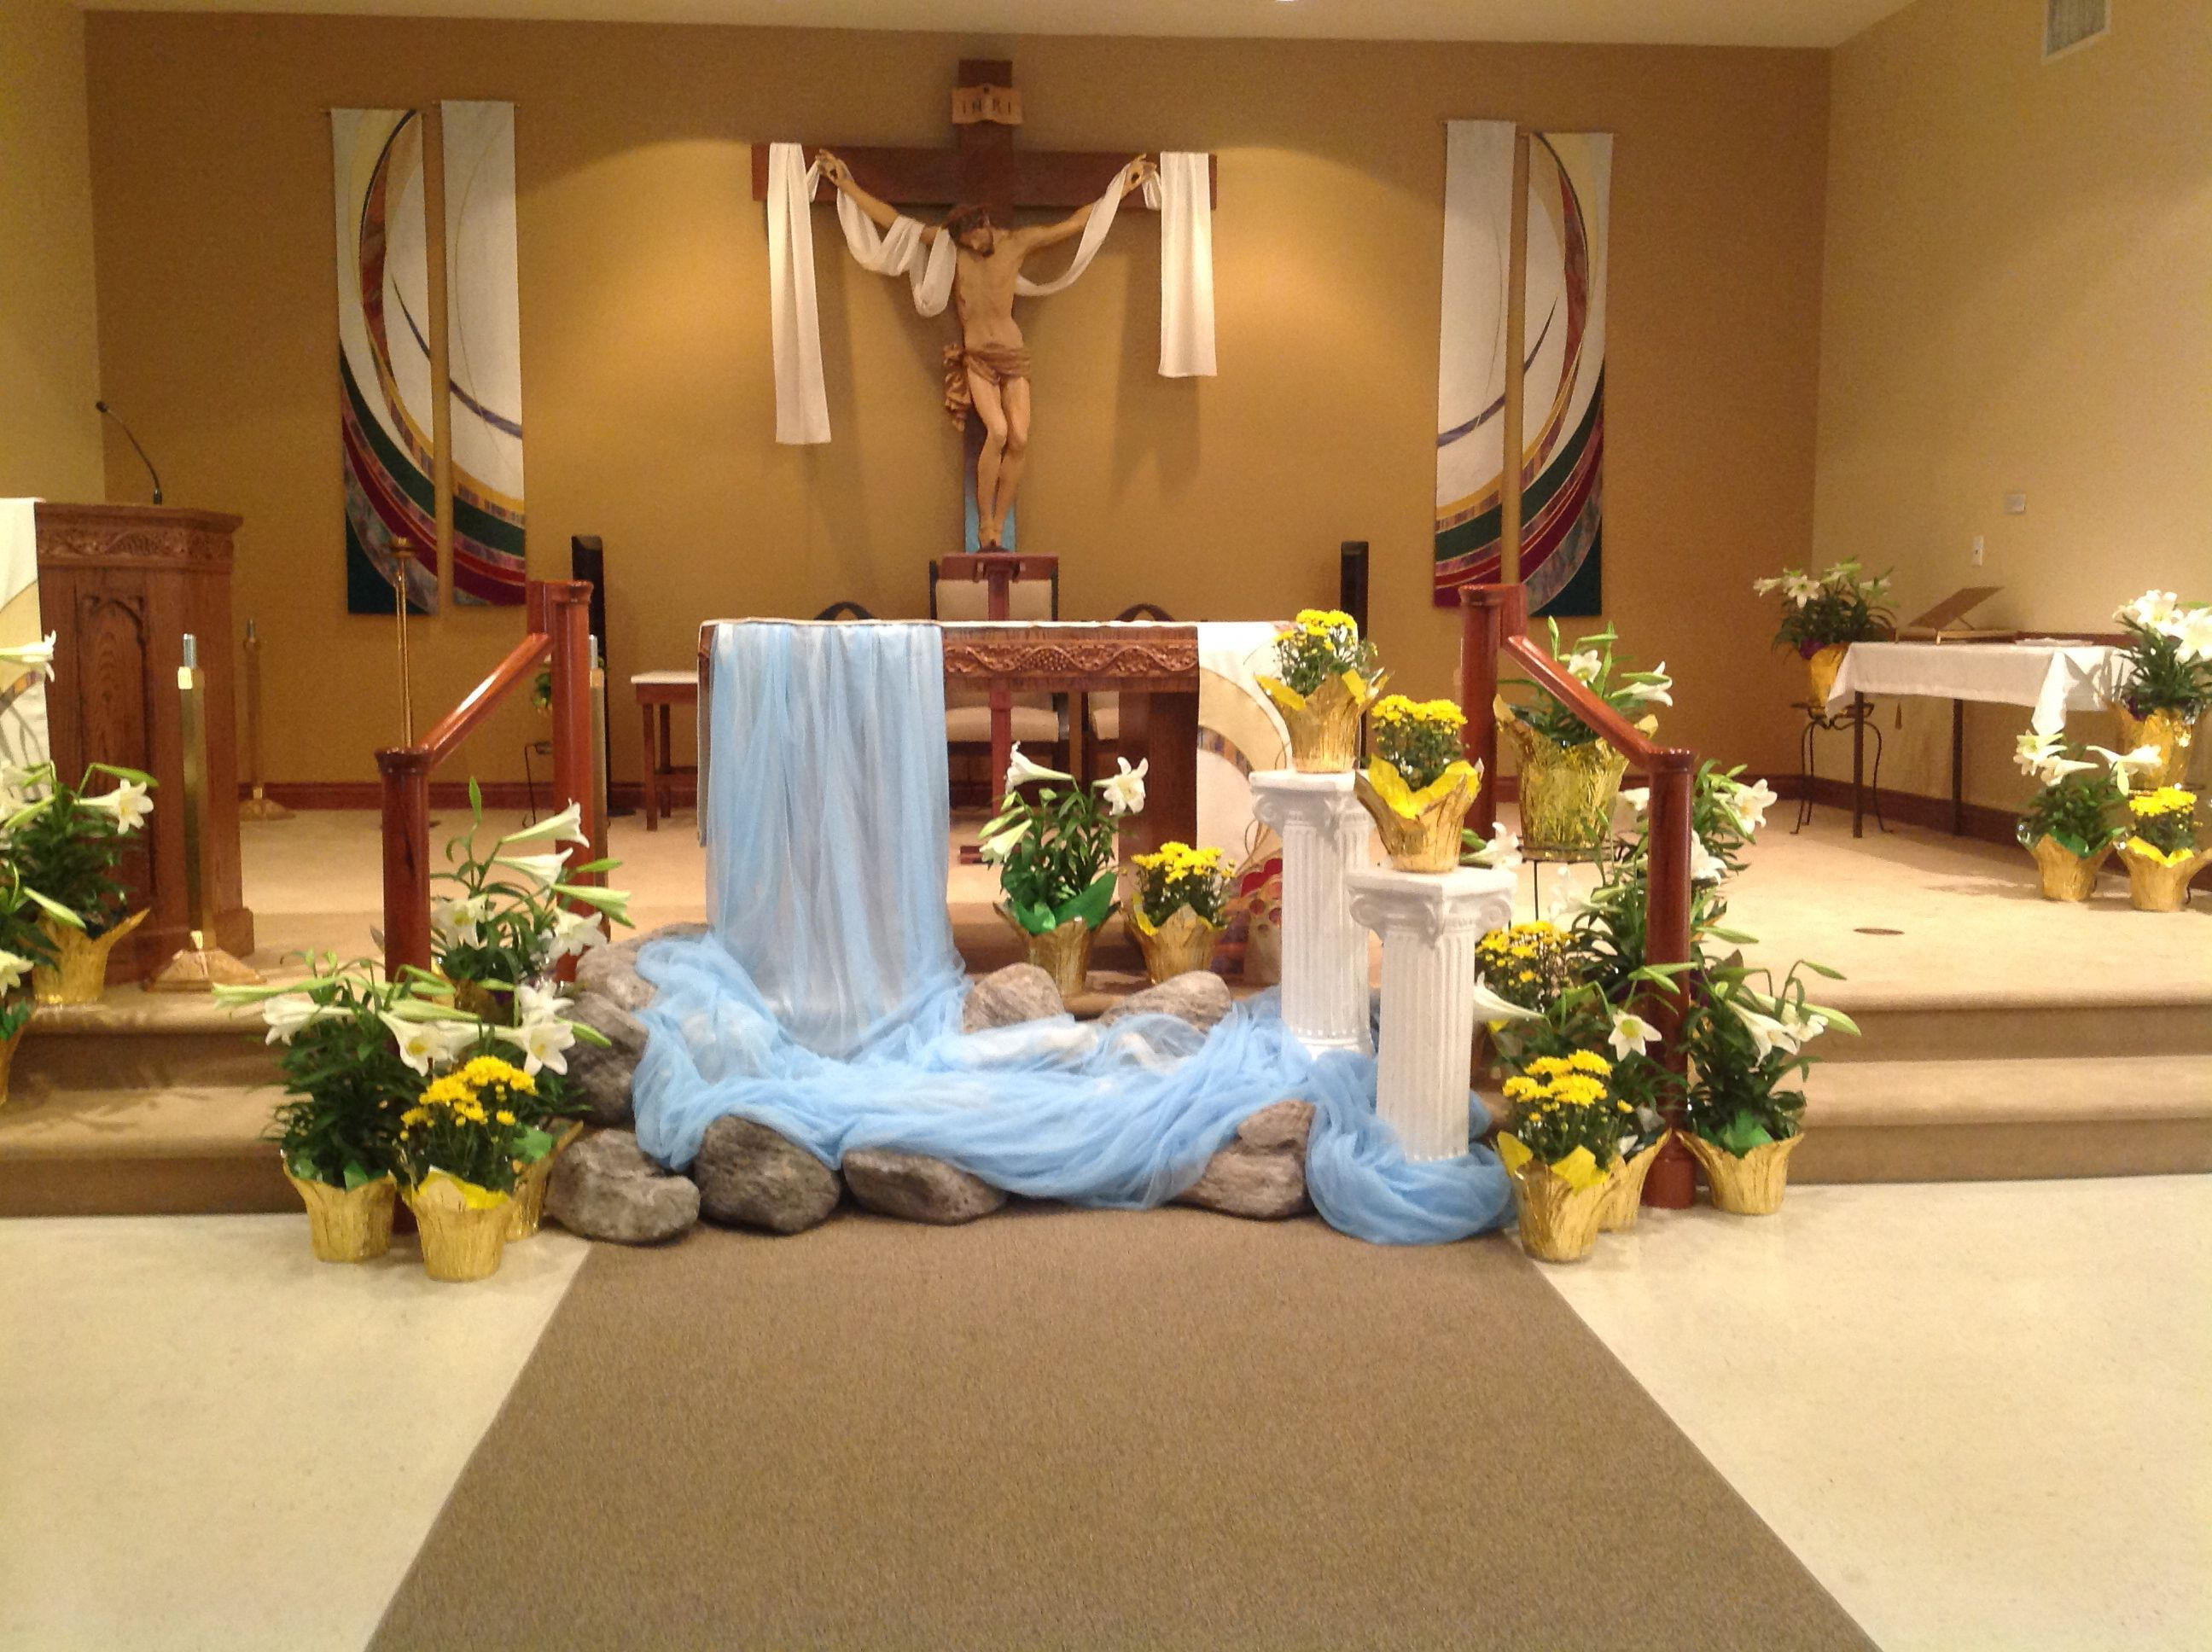 Church Easter Decorations